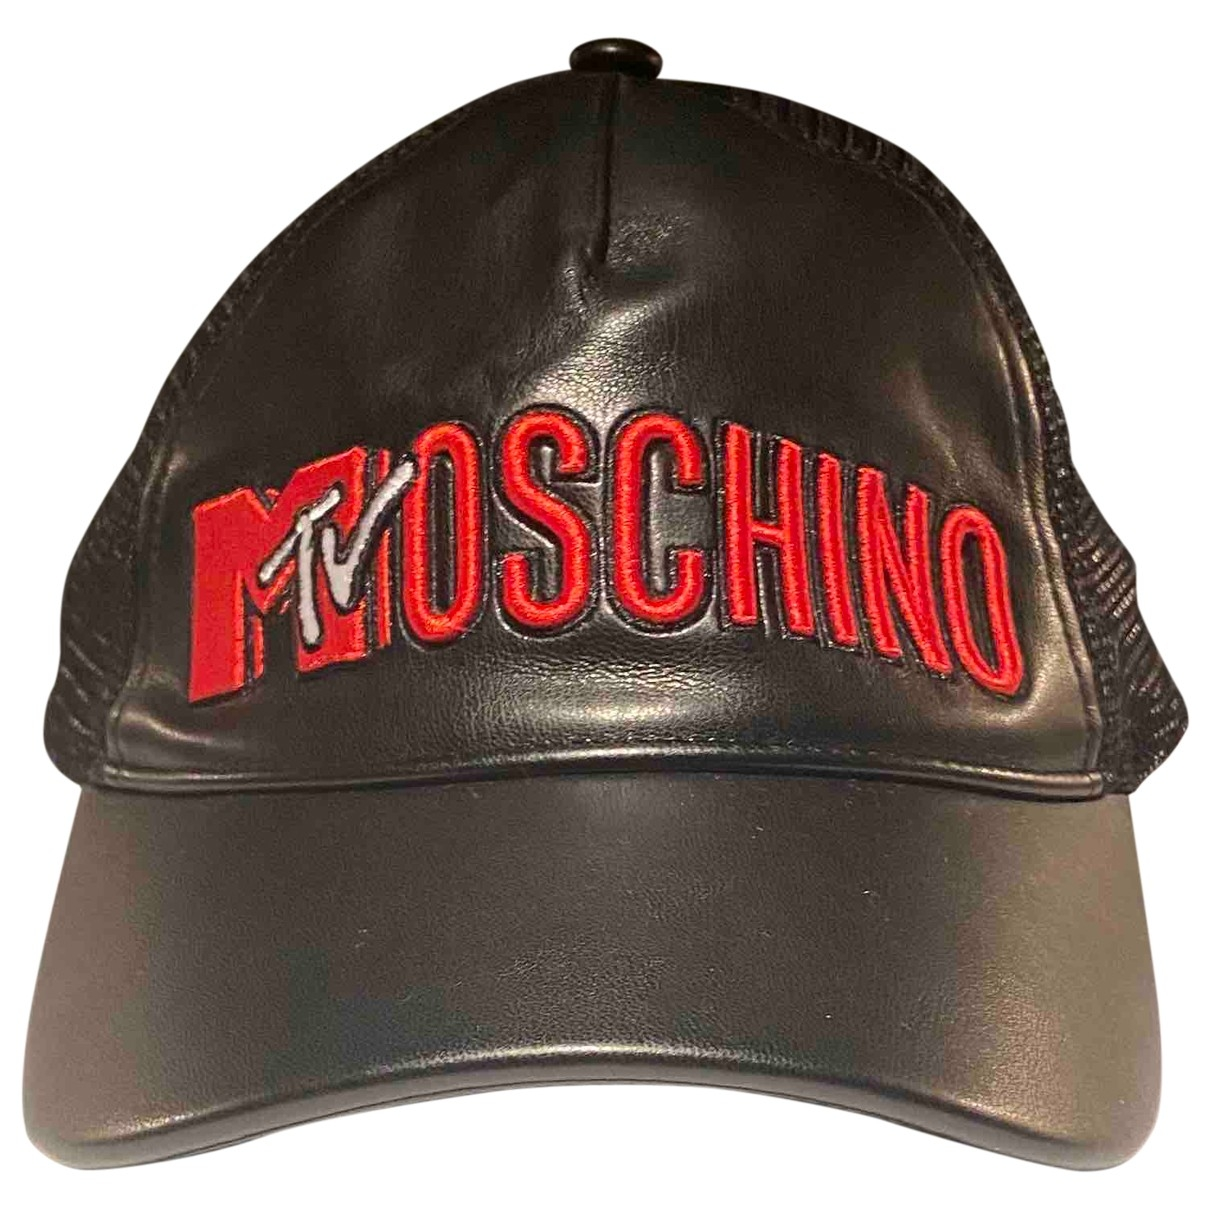 Sombrero / gorro Moschino For H&m